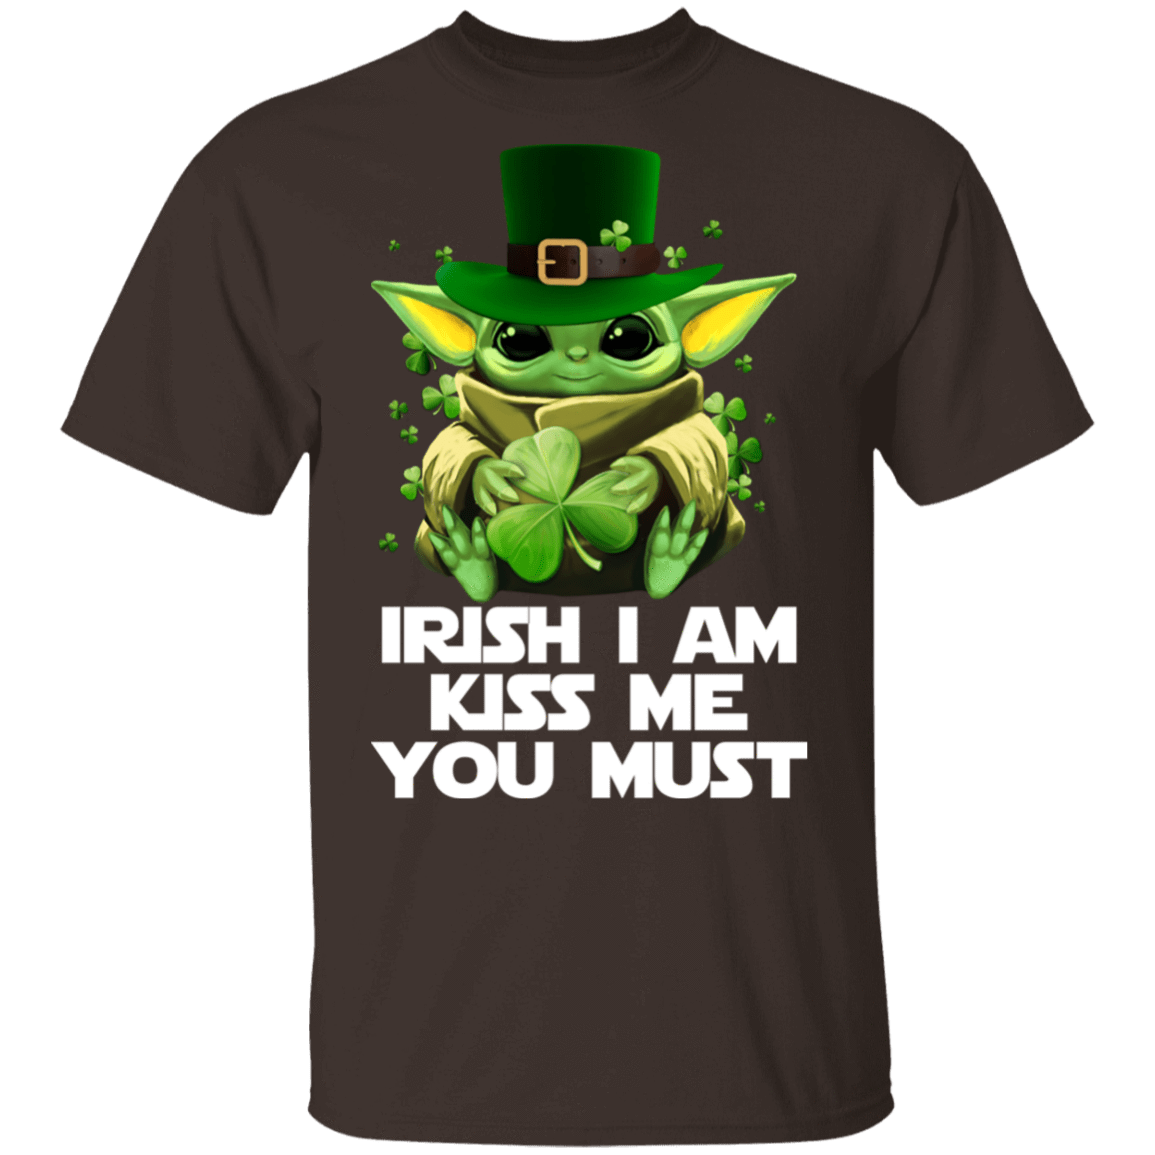 Irish I Am Kiss Me You Must Baby Yoda T-Shirts, Hoodies 1049-9956-84493600-48152 - Tee Ript